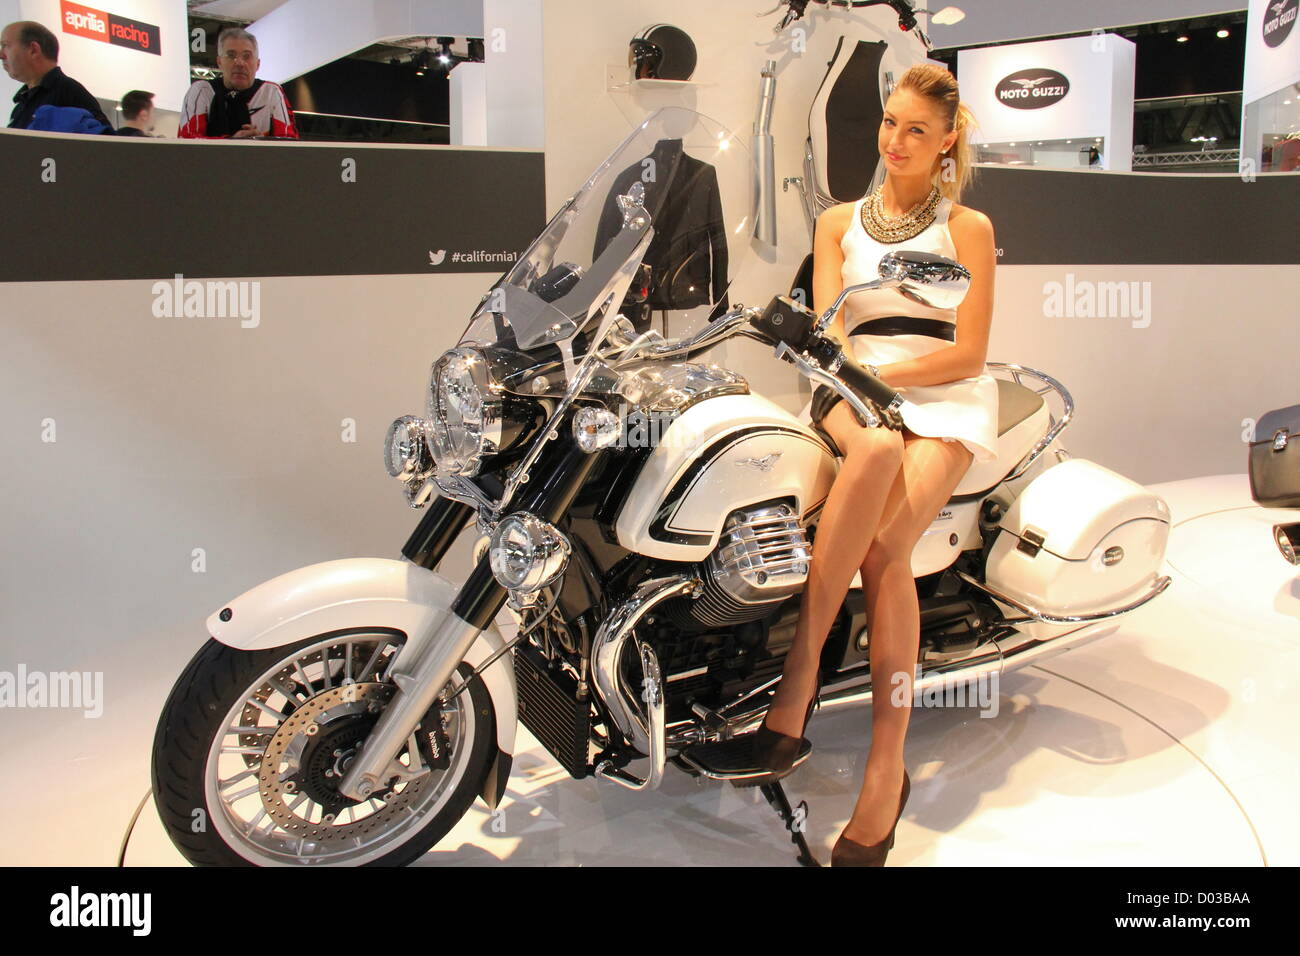 Wednesday, November 14, 2012 - Milan, Italy: EICMA, 70th International Bicycle and motorcycle Exhibition in Milan - Stock Image